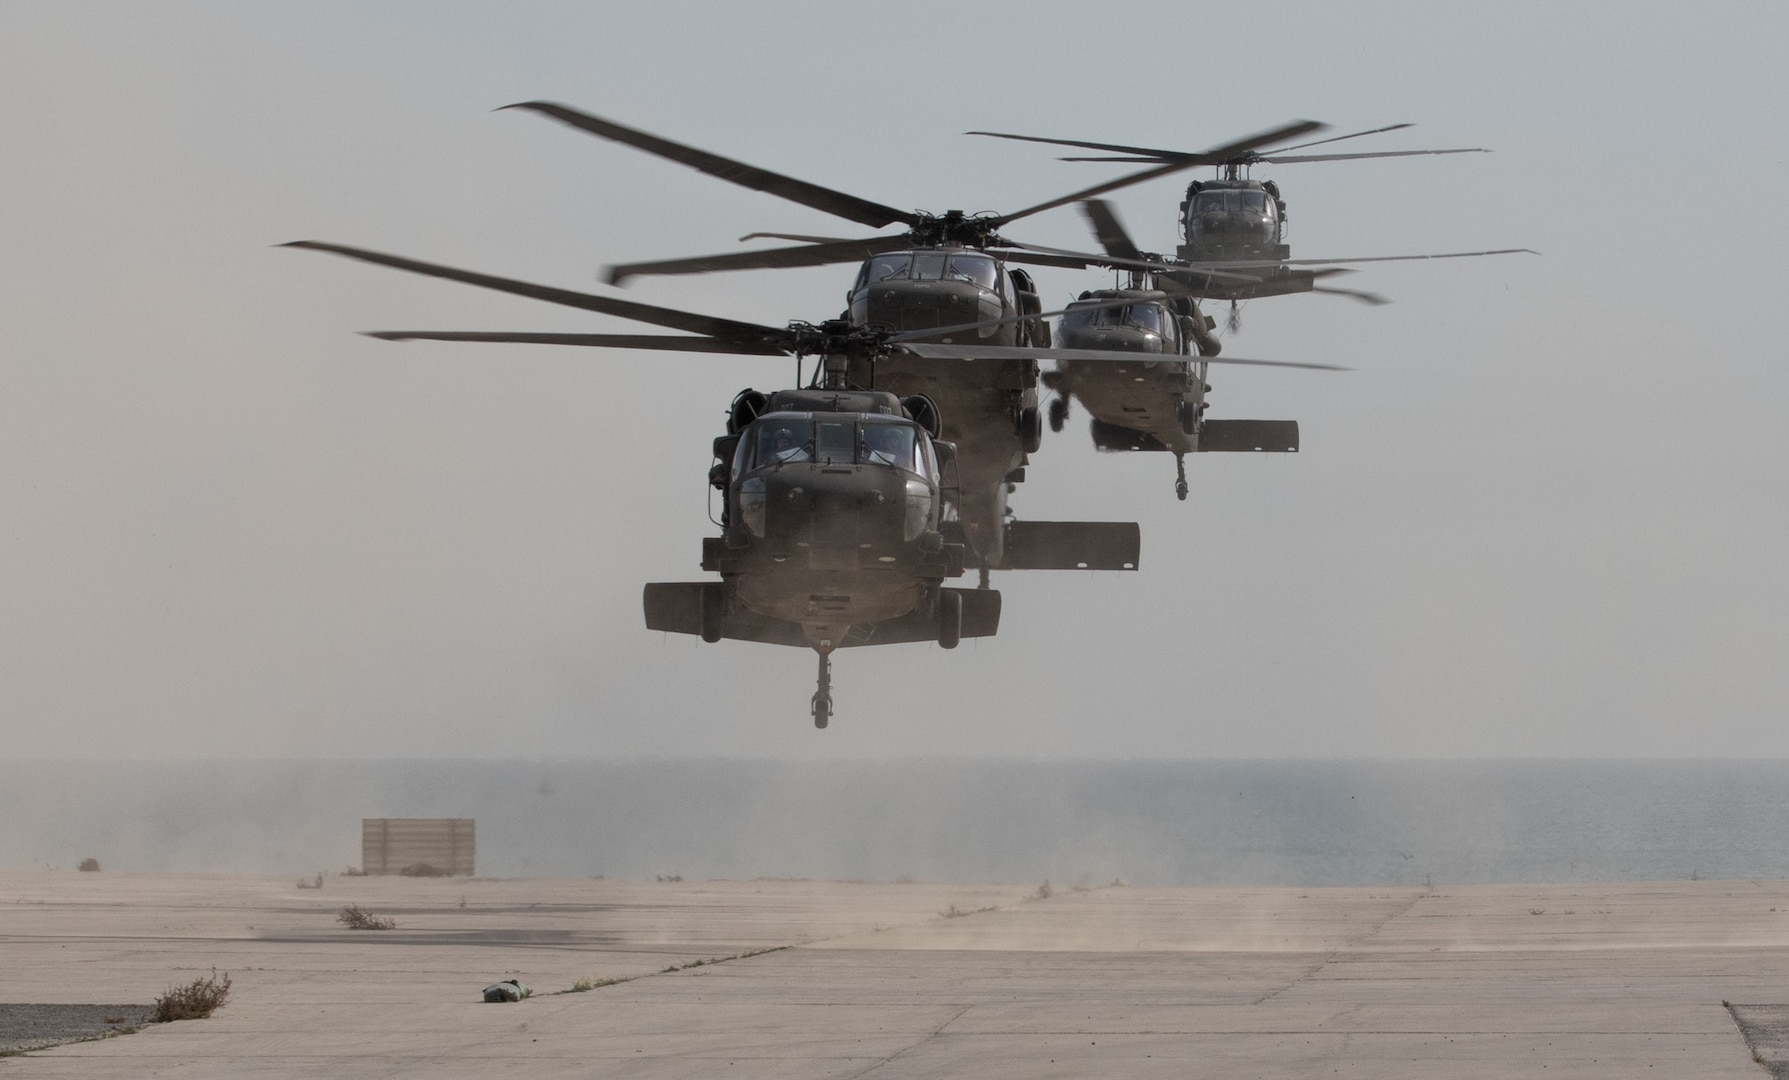 UH-60 Black Hawk helicopters carrying distinguished visitors arrive for Army Day 2018, Feb. 9, 2018, Kuwait Naval Base, Kuwait. Army Day was the opening event for U.S. Central Command's Component Commanders Conference that allowed U.S. Army Central to showcase the Army's capabilities at the theater level. (U.S. Army photo by Sgt. 1st Class Ty McNeeley, U.S. ARCENT PAO)